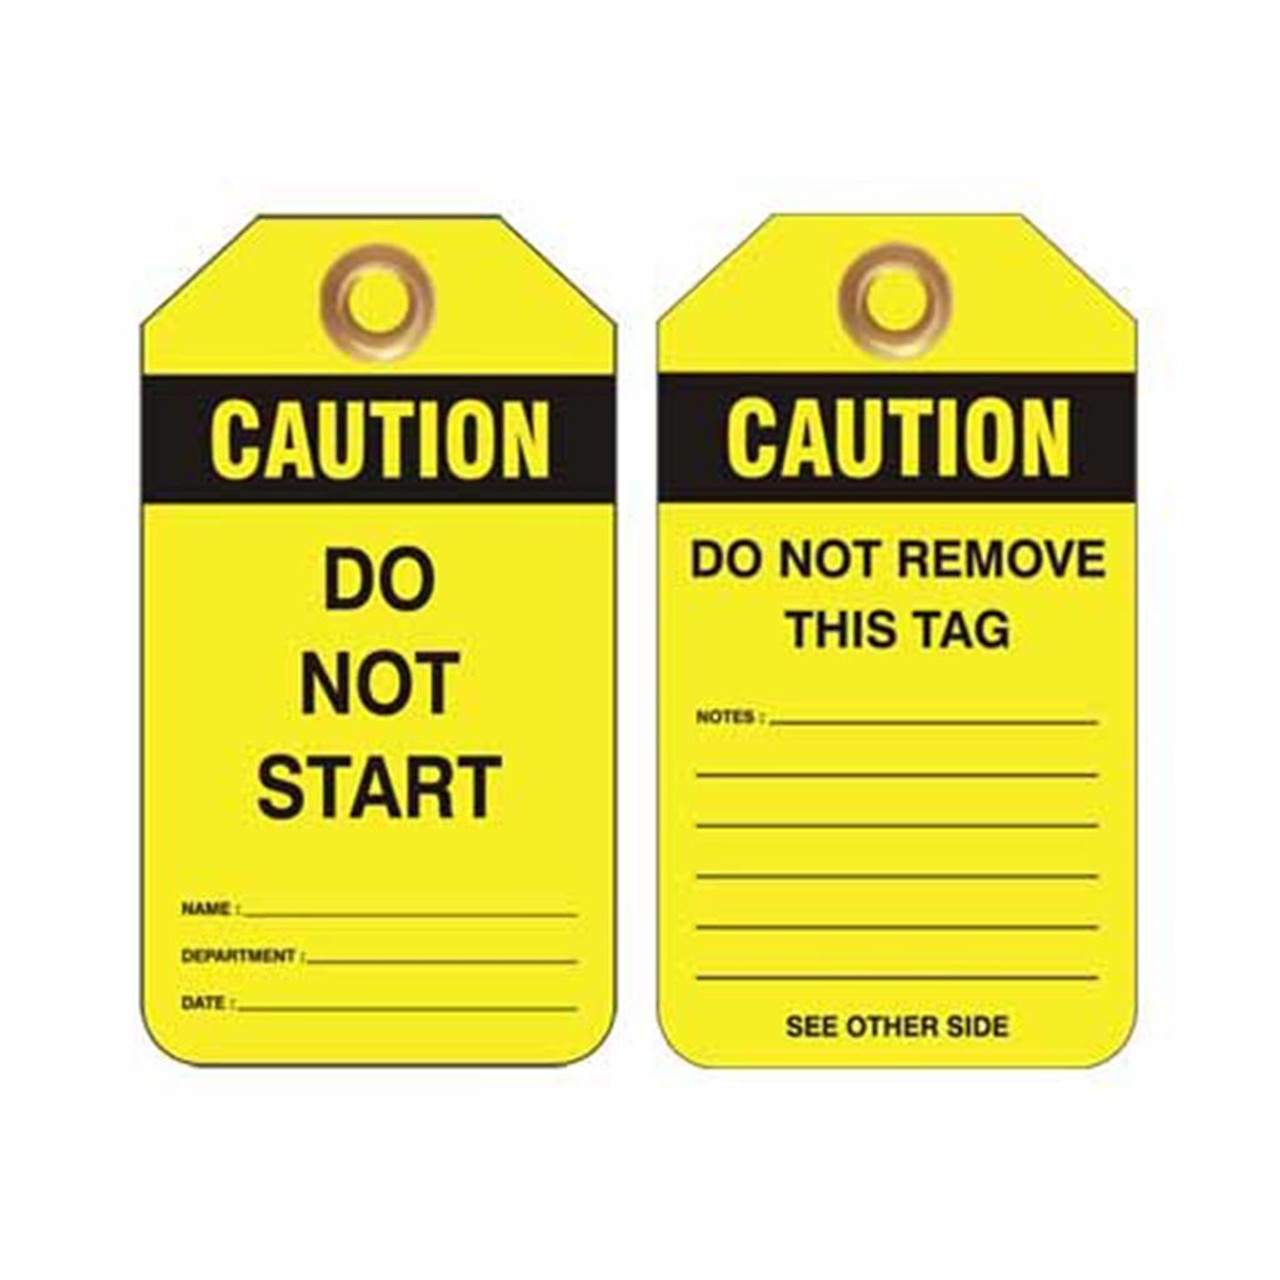 Lockout Tag Danger Do Not Start - PS- LOTO-TAG